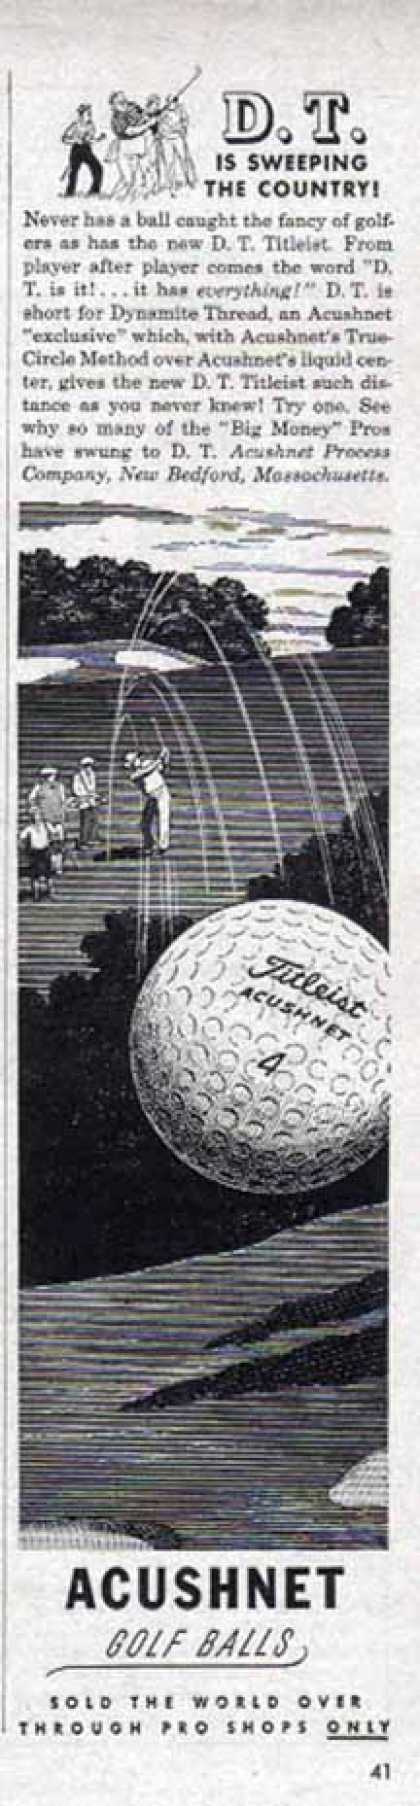 Titleist Acushnet Golf Ball – D.T. Sweeping the Country (1949)